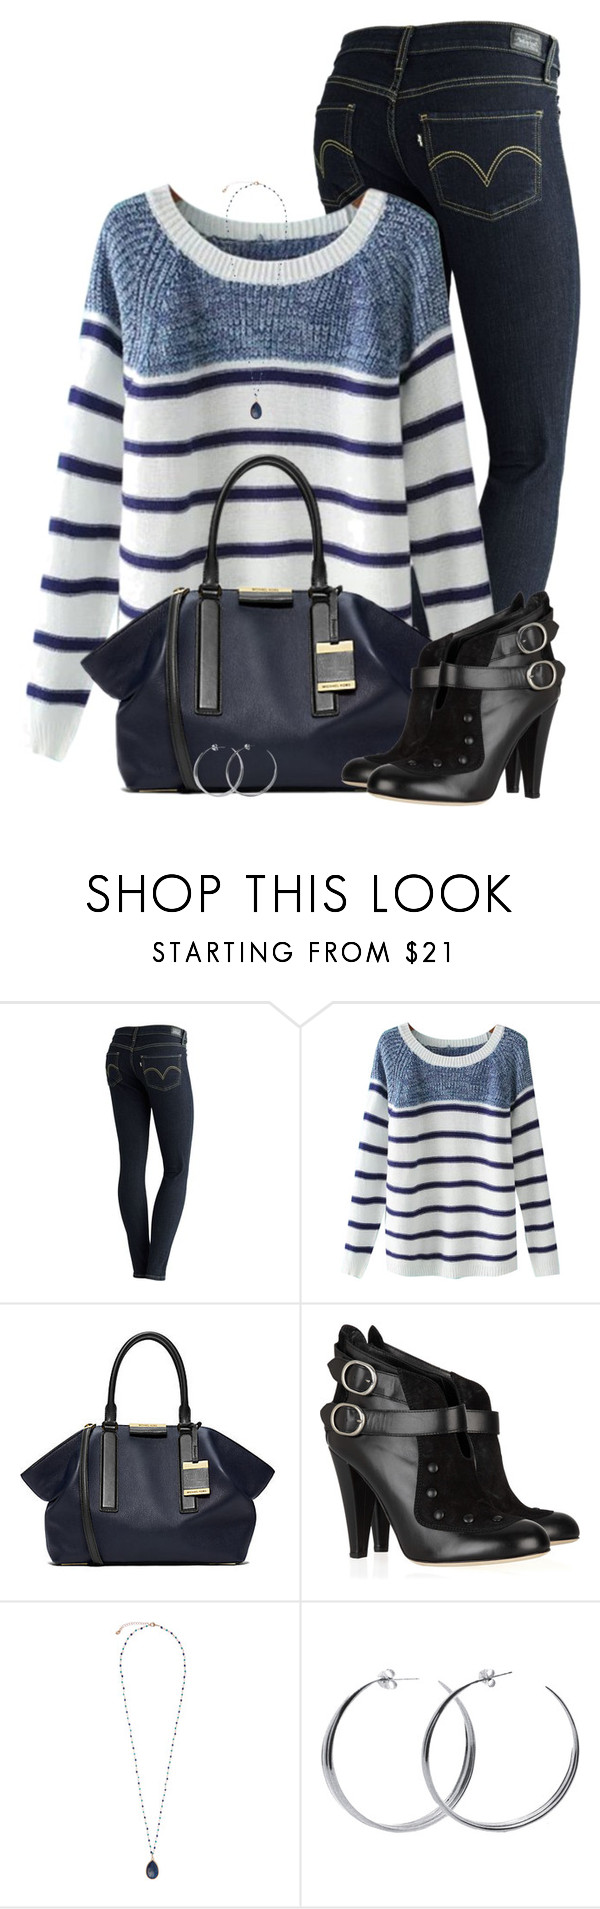 """Striped Sweater"" by daiscat ❤ liked on Polyvore featuring Levi's, Chicnova Fashion, Michael Kors, Philosophy di Alberta Ferretti, Monsoon and Coco's Liberty"